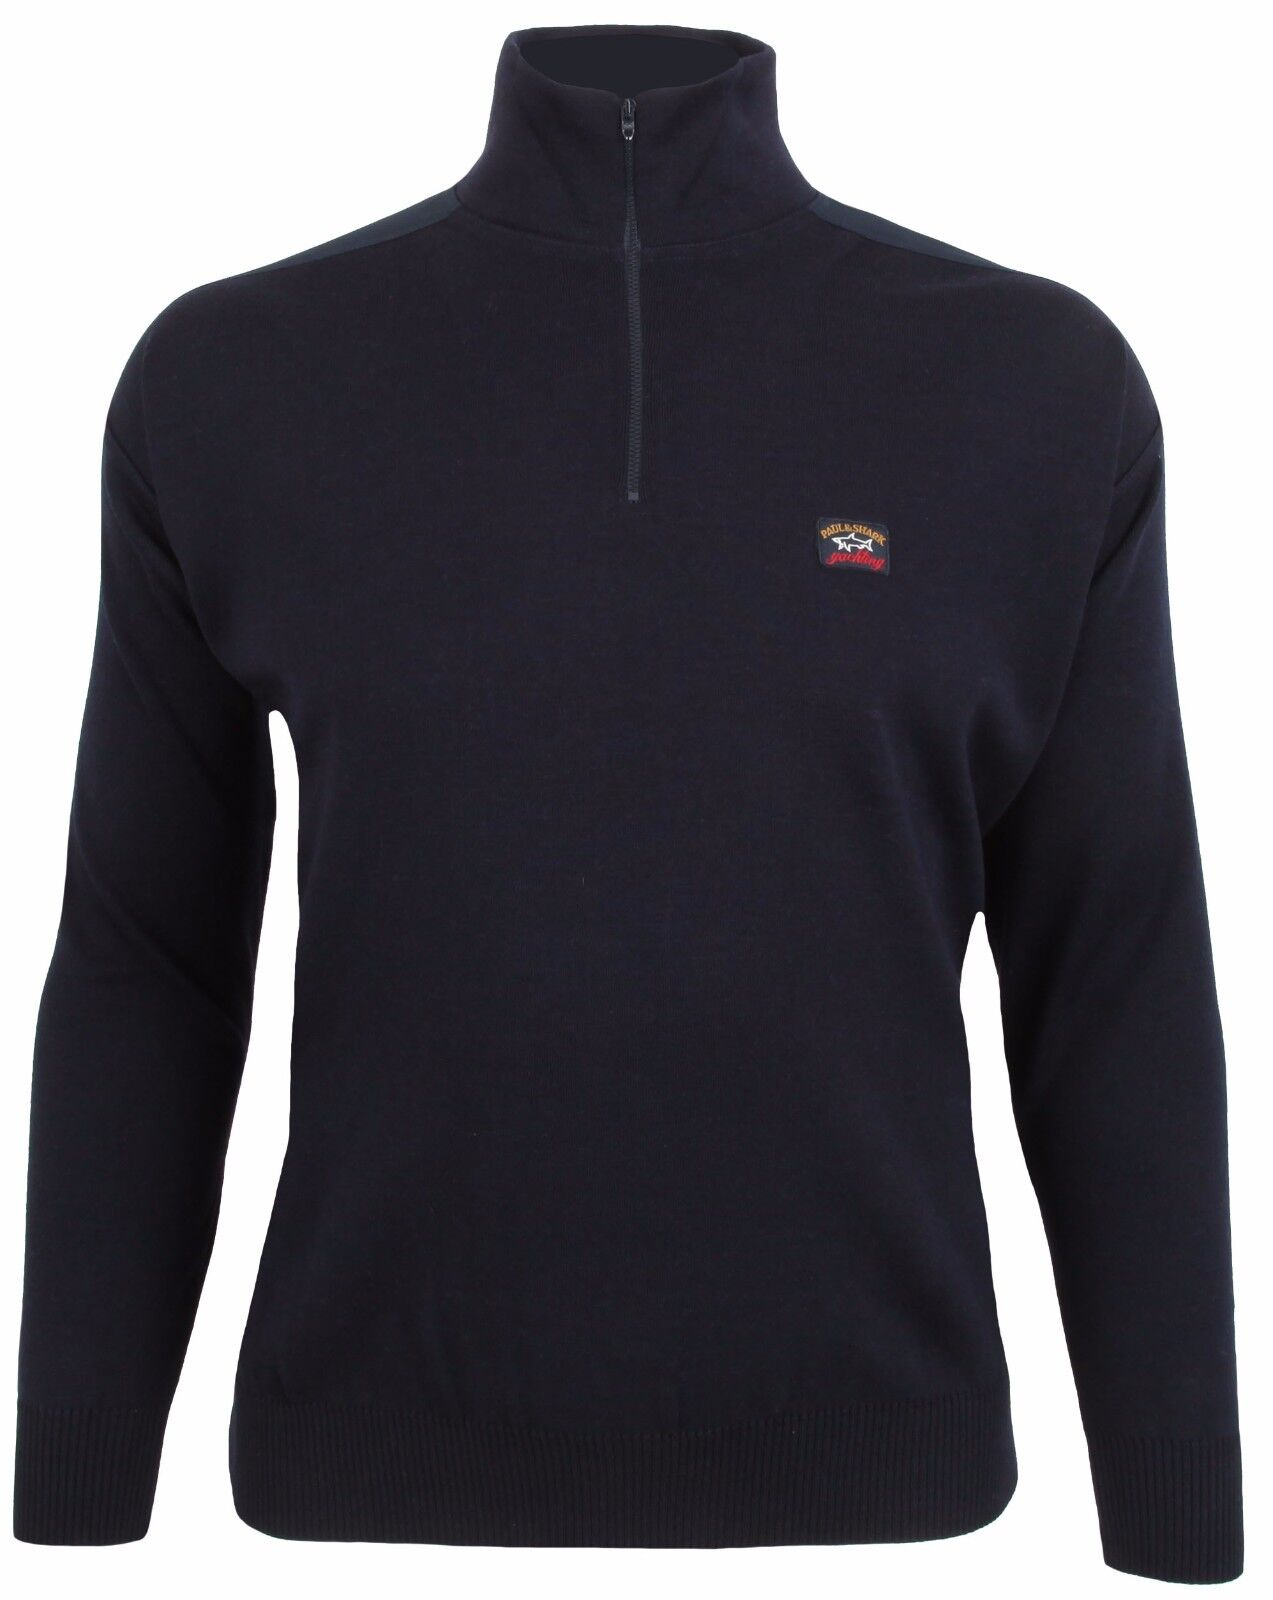 PAUL & SHARK YACHTING Pullover Sweater Troyer Größe 3XL Navy YACHTING COLLECTION